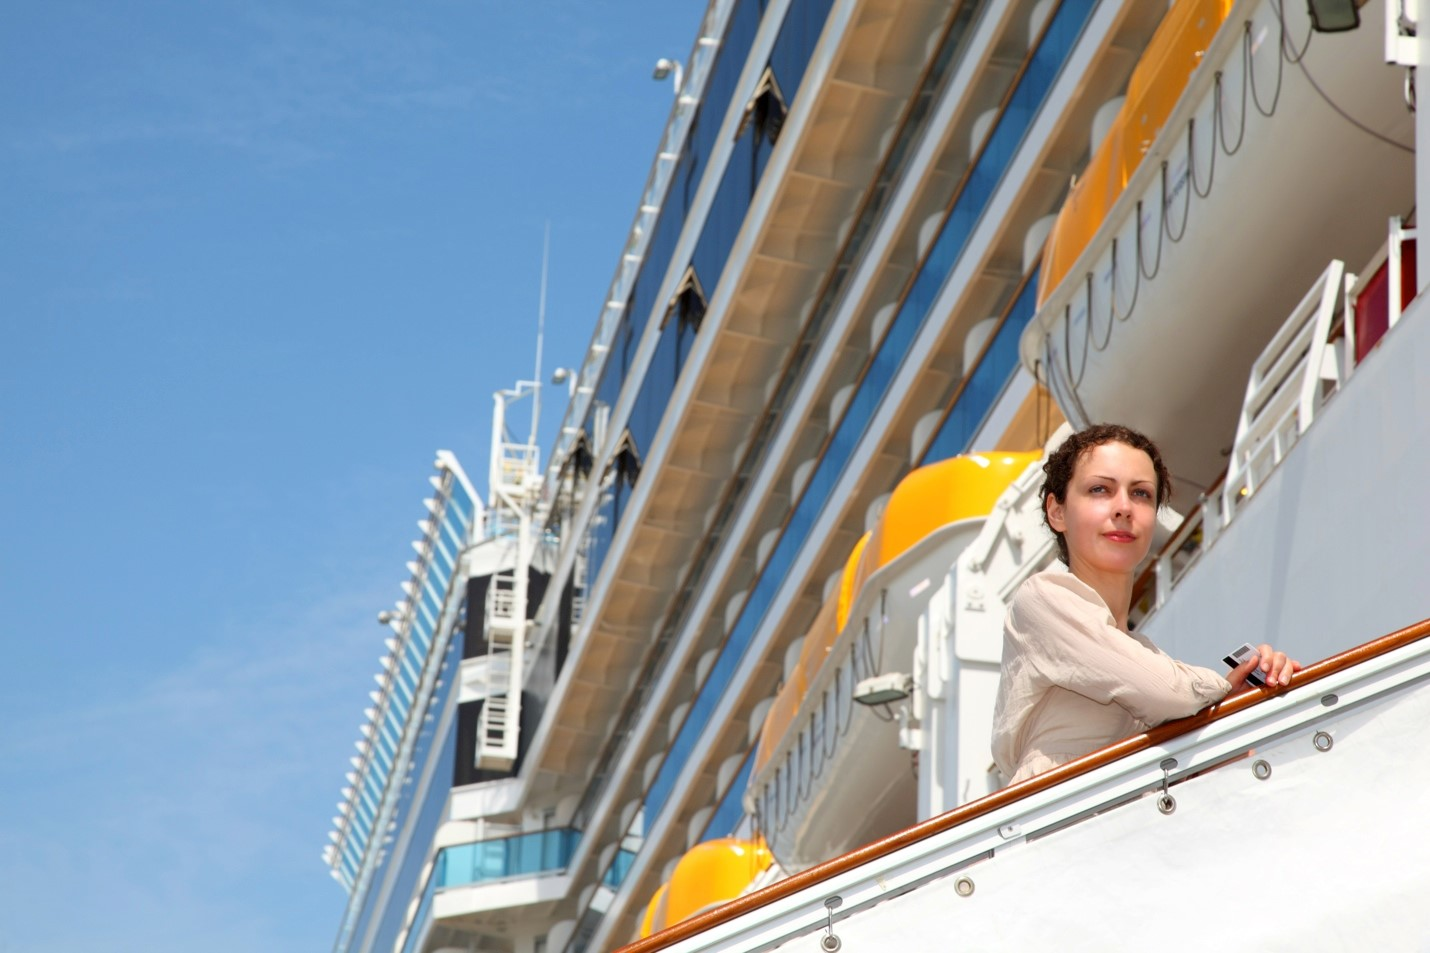 Despite Laws Being Constantly in Flux, Cruise Lines Have a Duty of Care